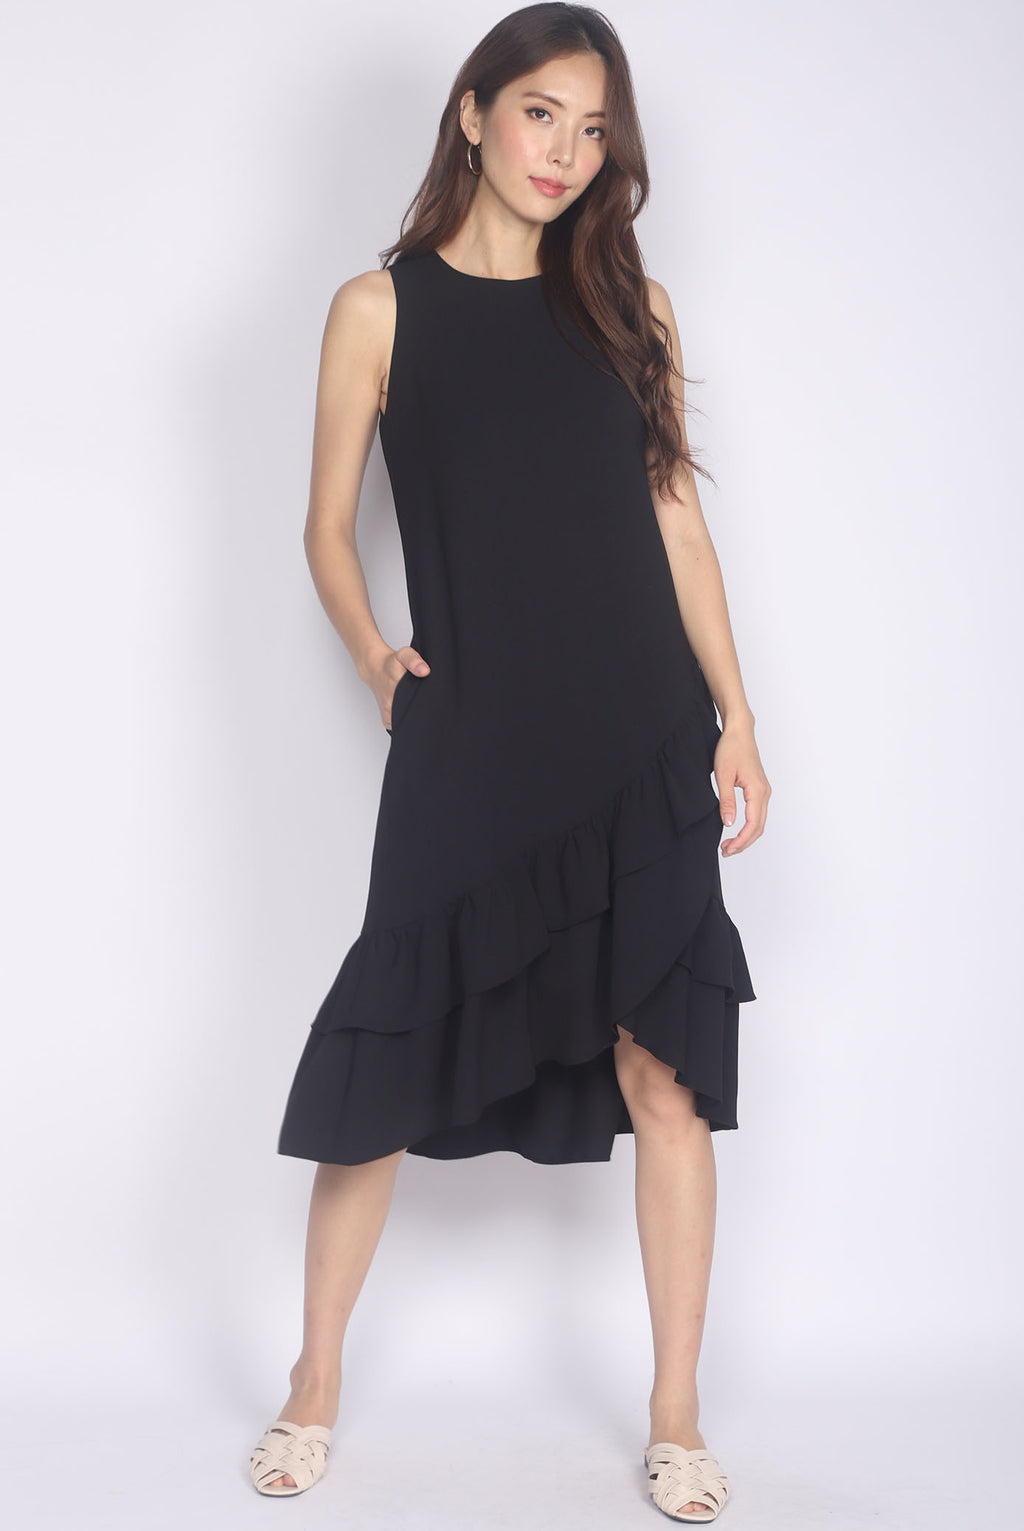 *Restocked* TDC Cimorene Ruffle Tiered Midi Dress In Black